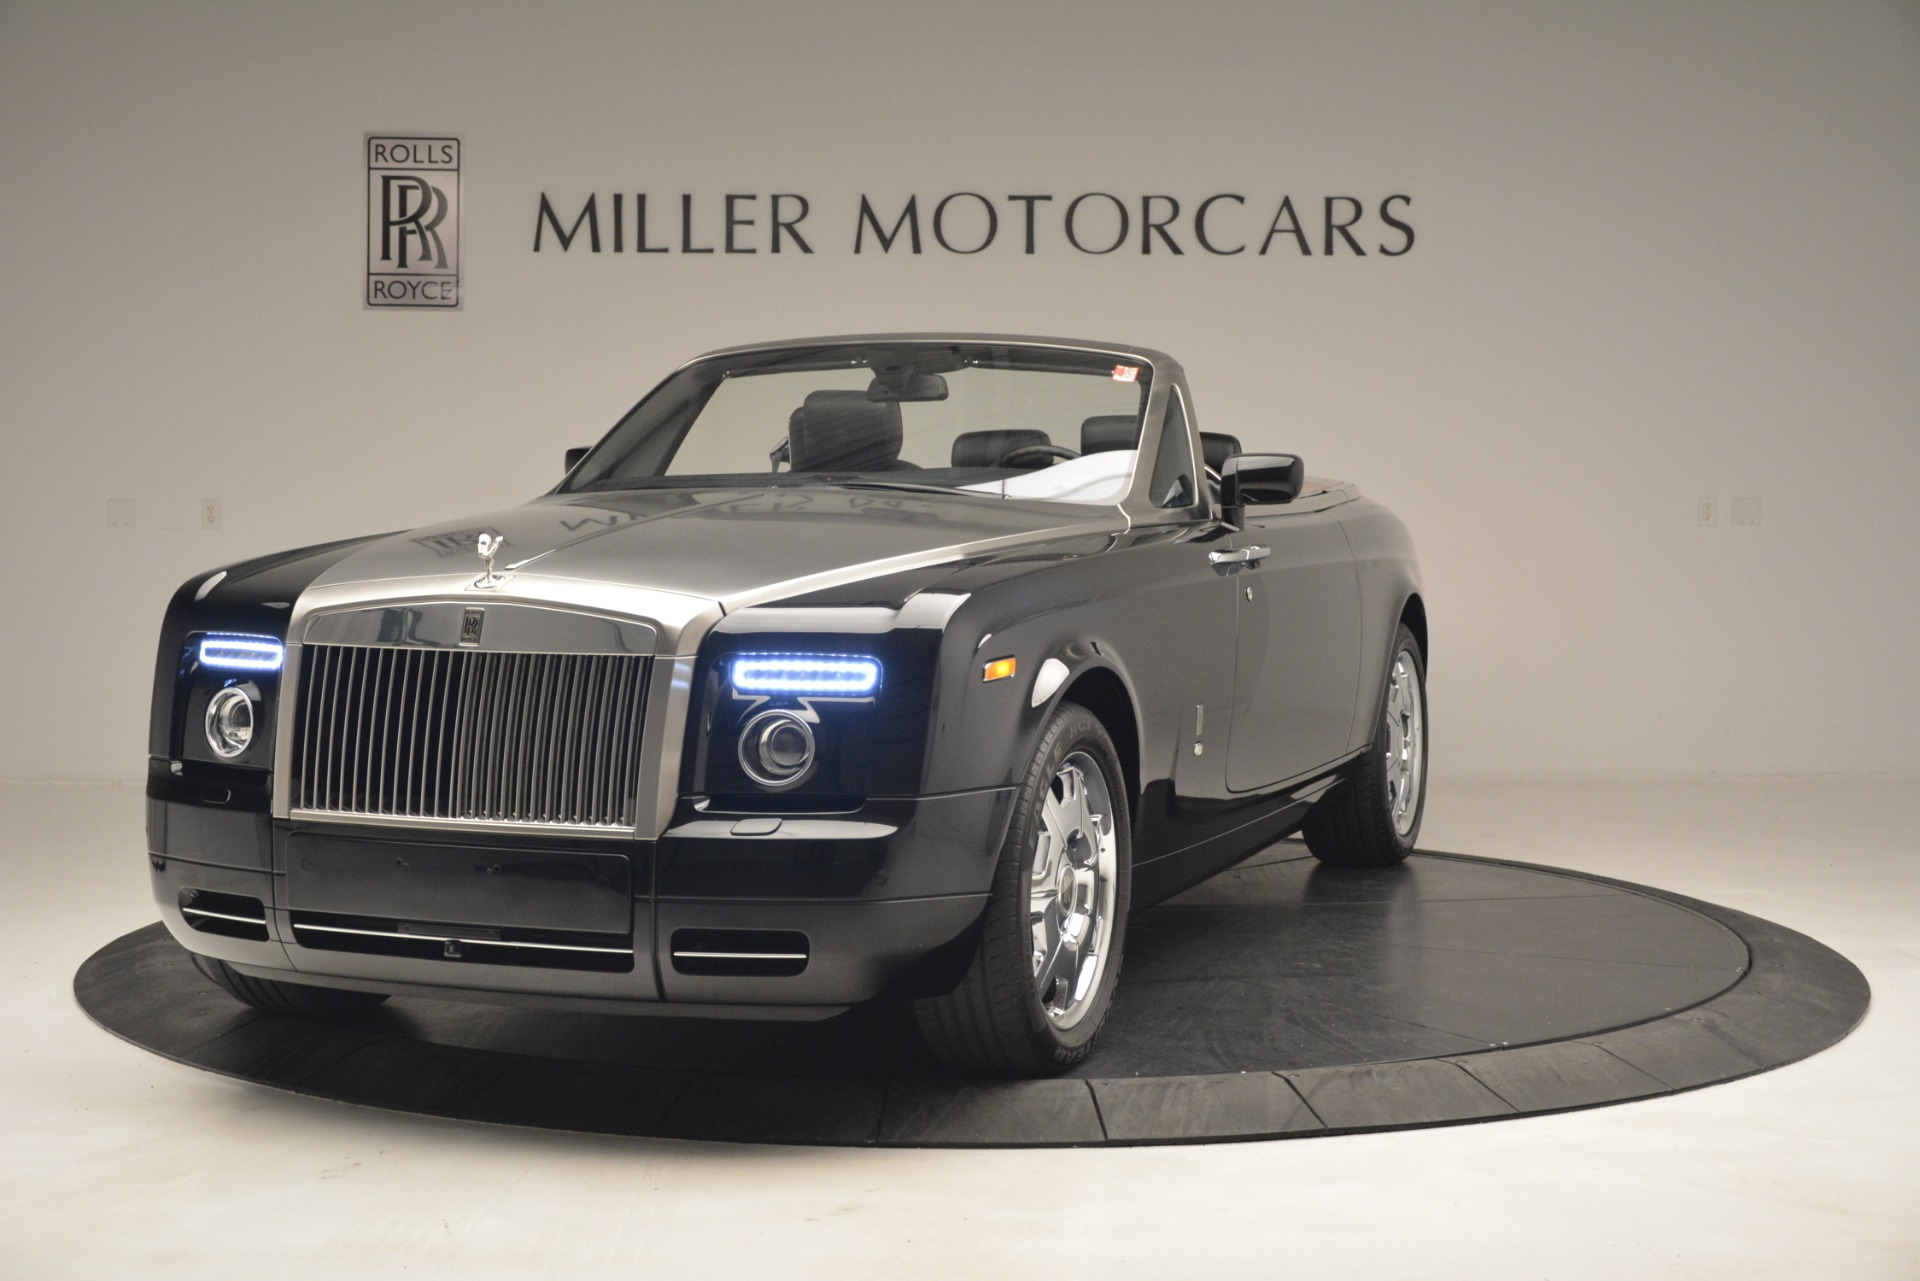 Used 2008 Rolls-Royce Phantom Drophead Coupe for sale Sold at Pagani of Greenwich in Greenwich CT 06830 1